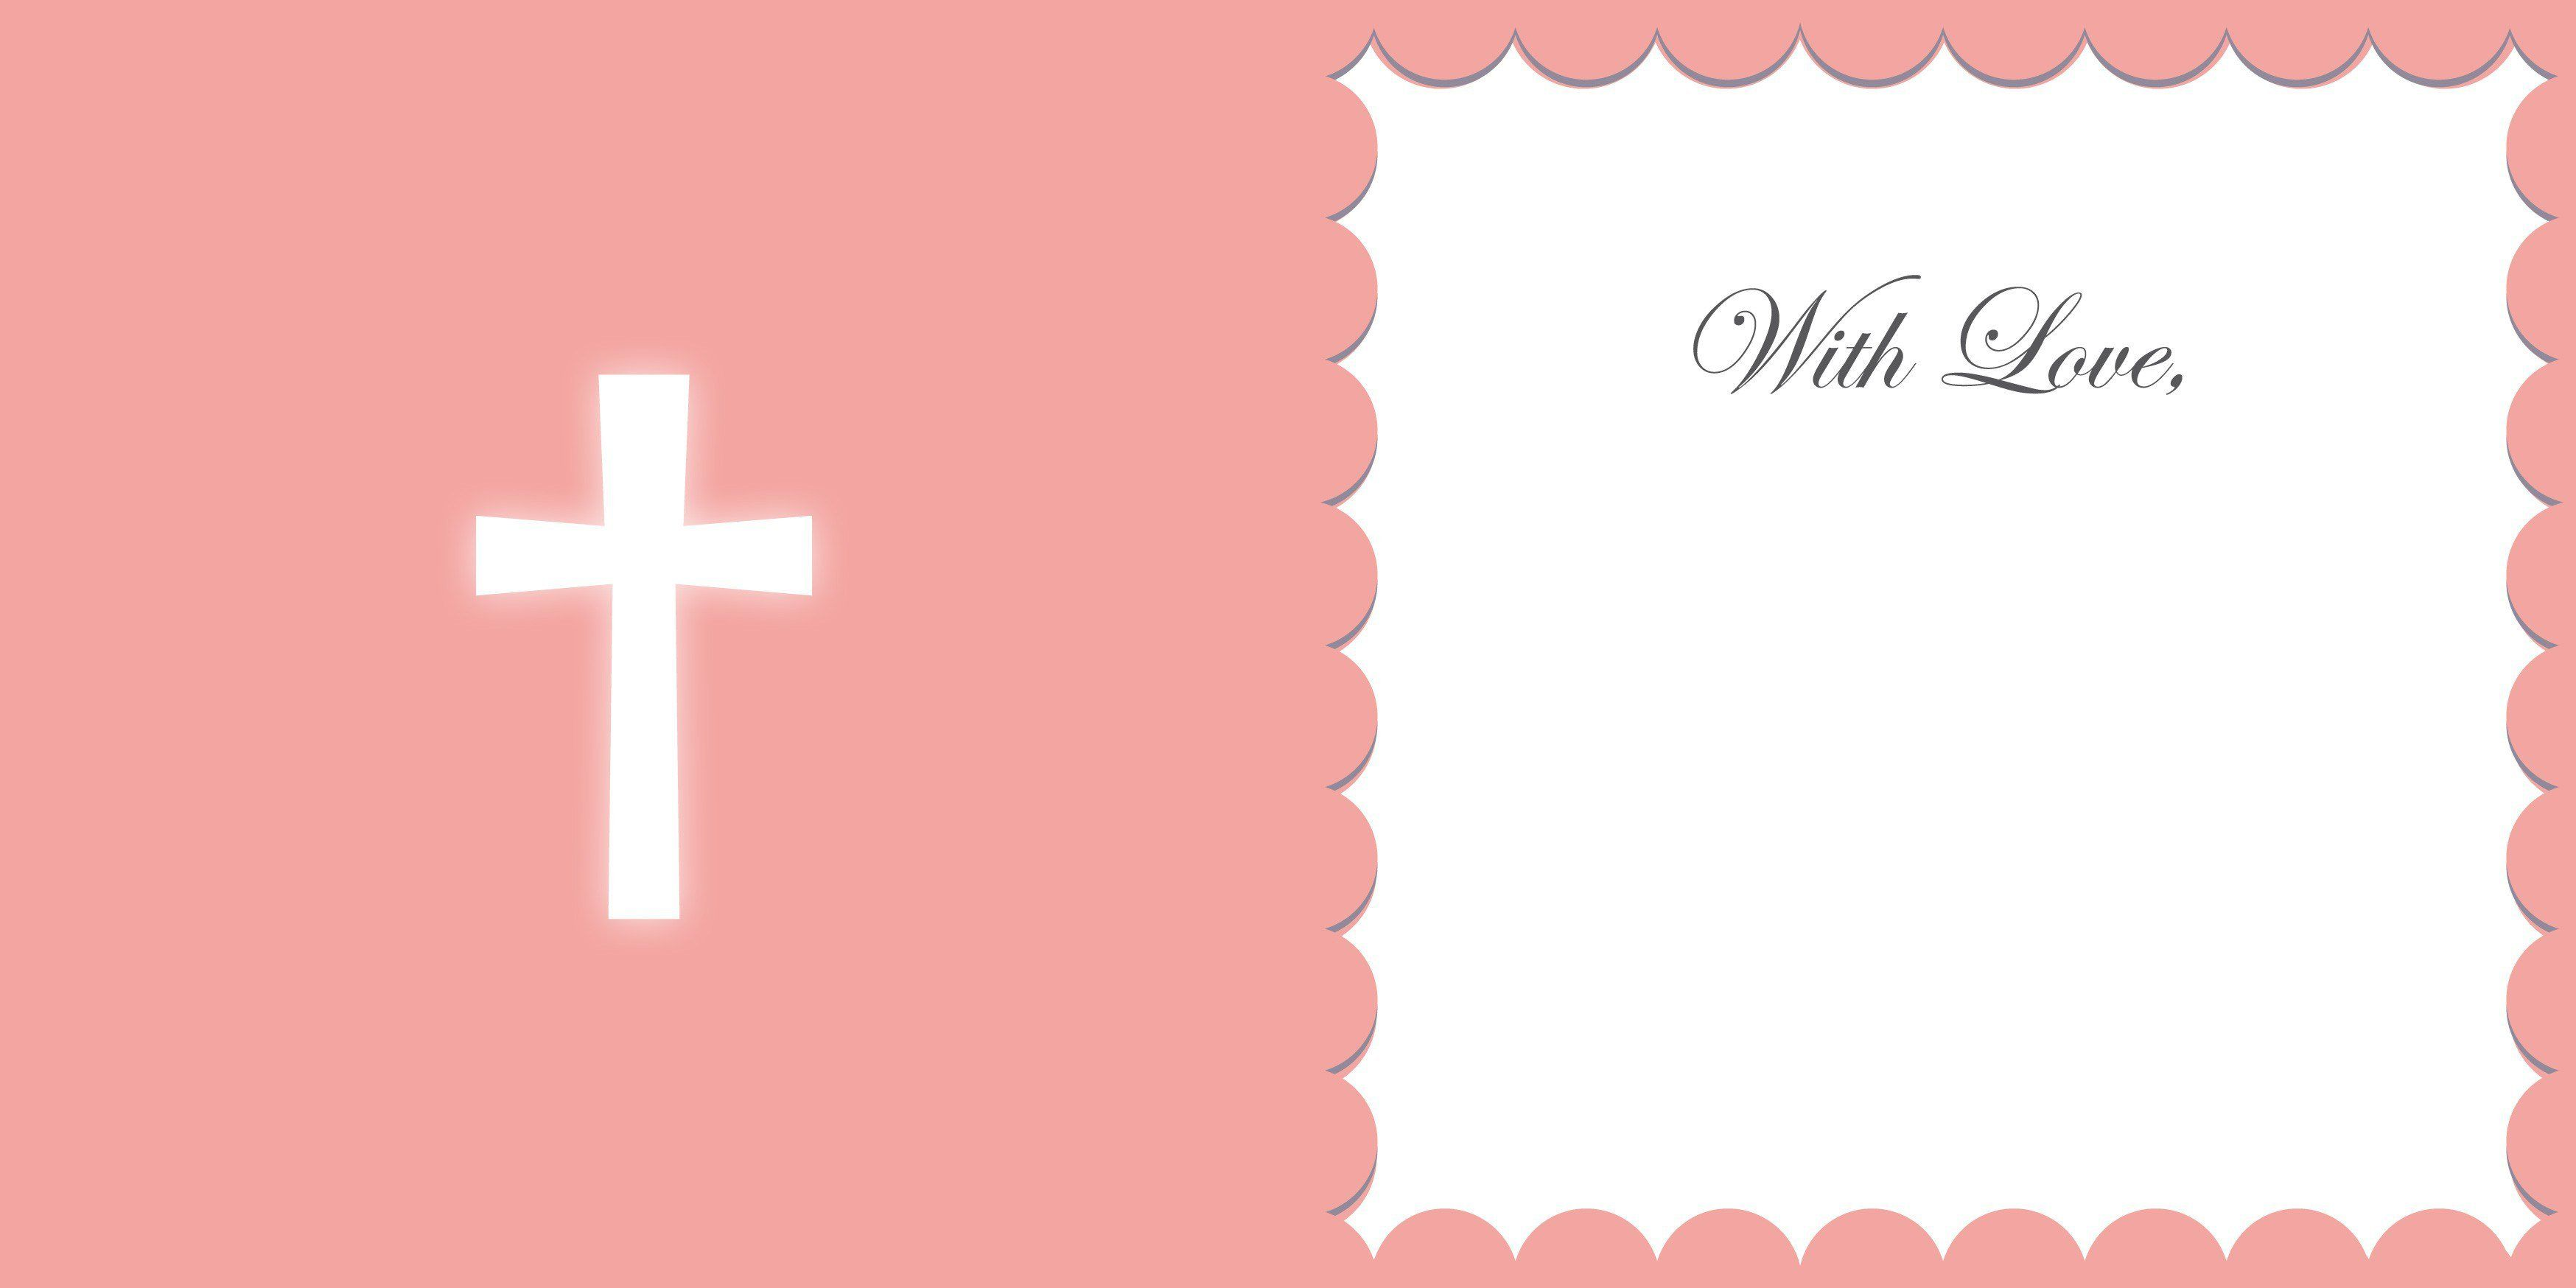 Baby Girl Baptism Invitations Christening Invitations Girl Baptism Invitations Girl Christening Invitations